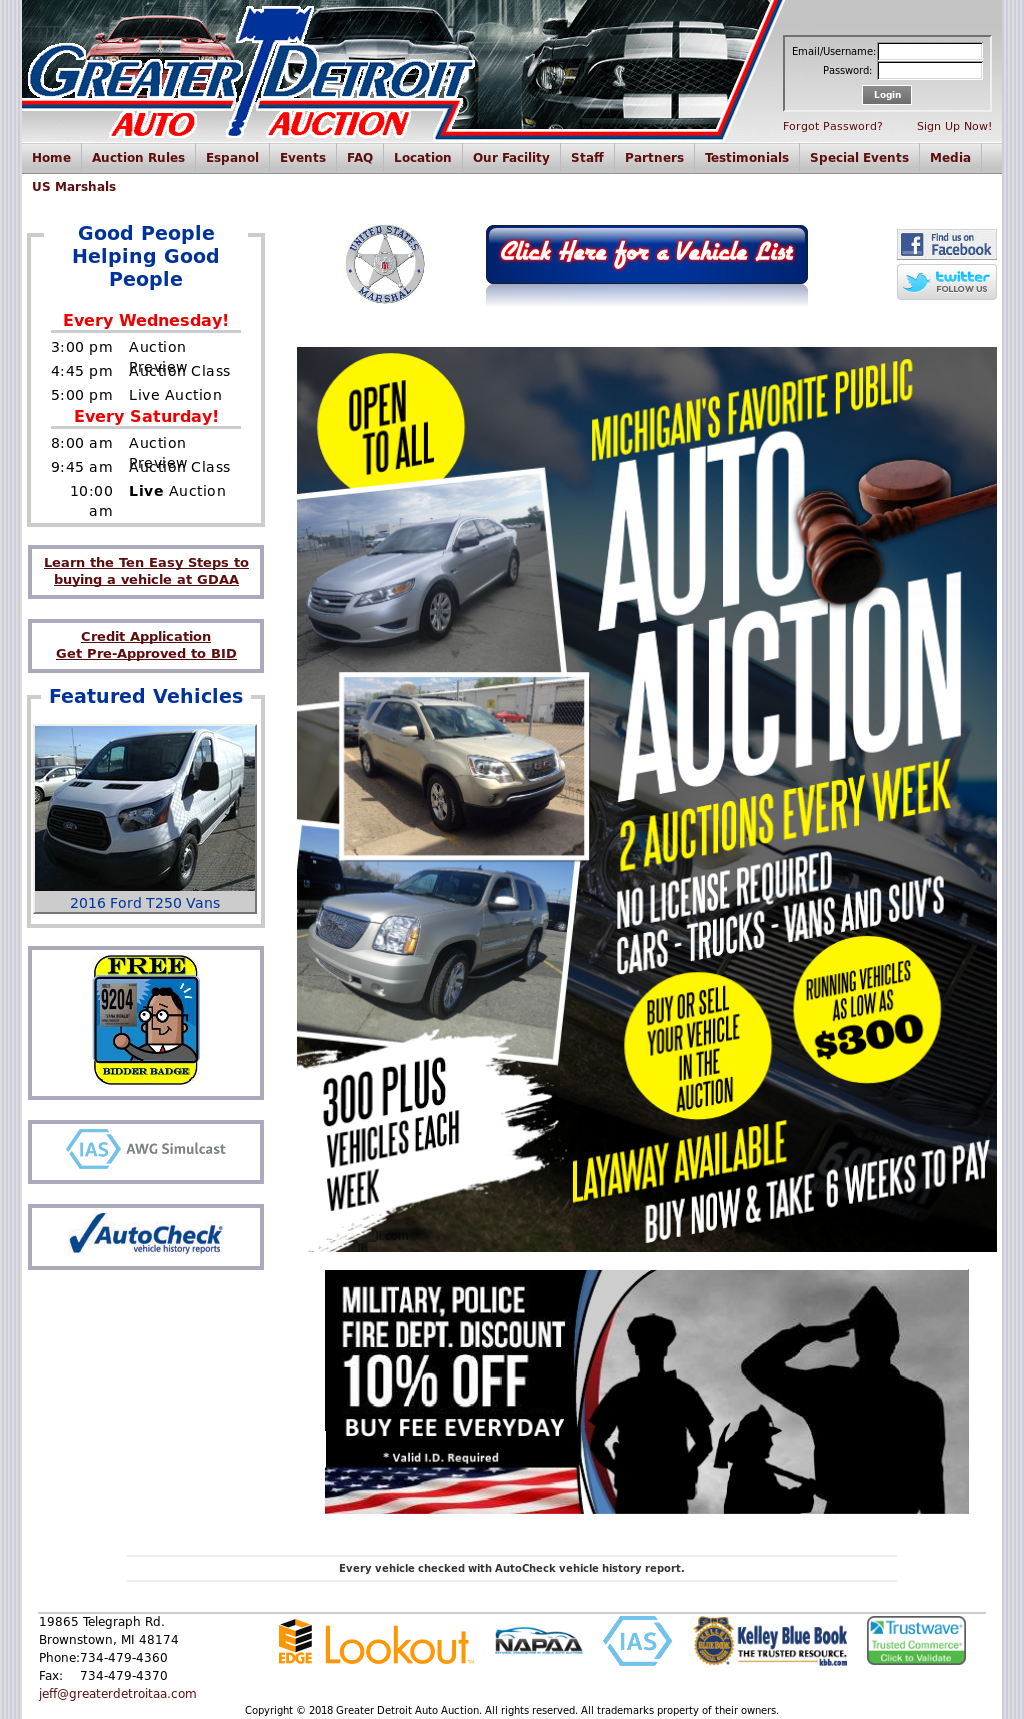 Port Huron Auto Auction Competitors, Revenue and Employees